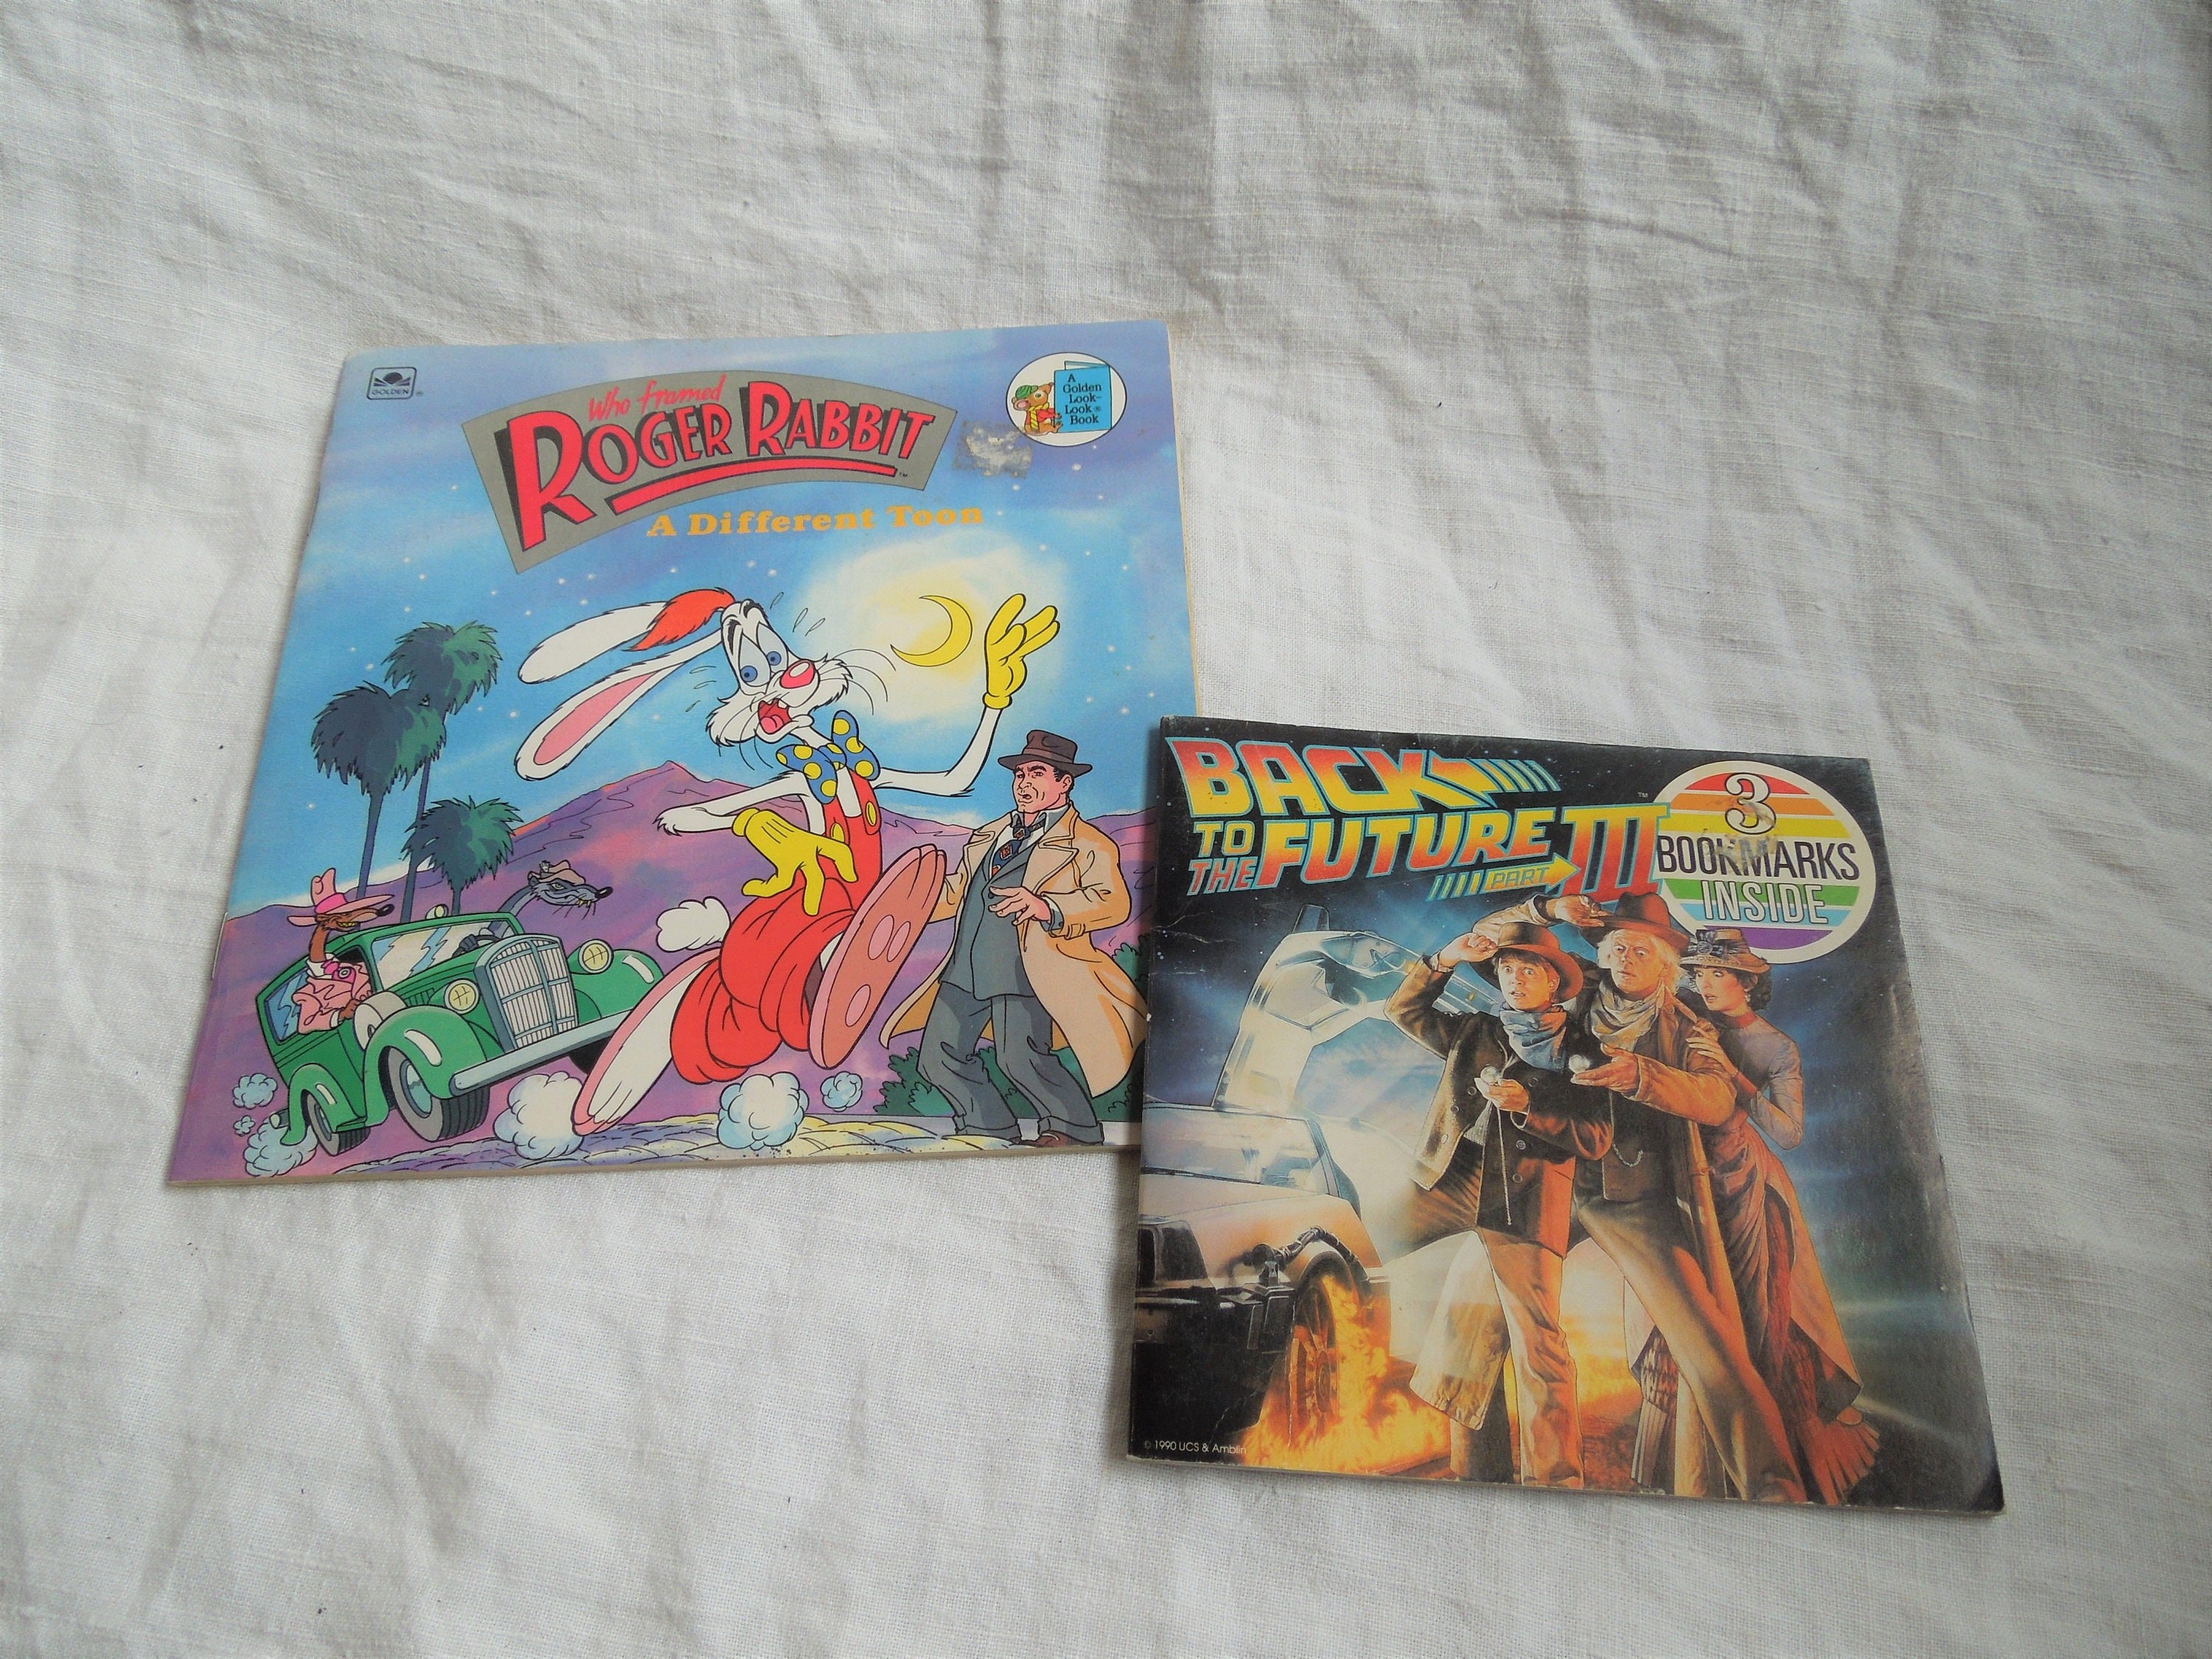 90s Back to the Future and Who Framed Roger Rabbit Movie Book